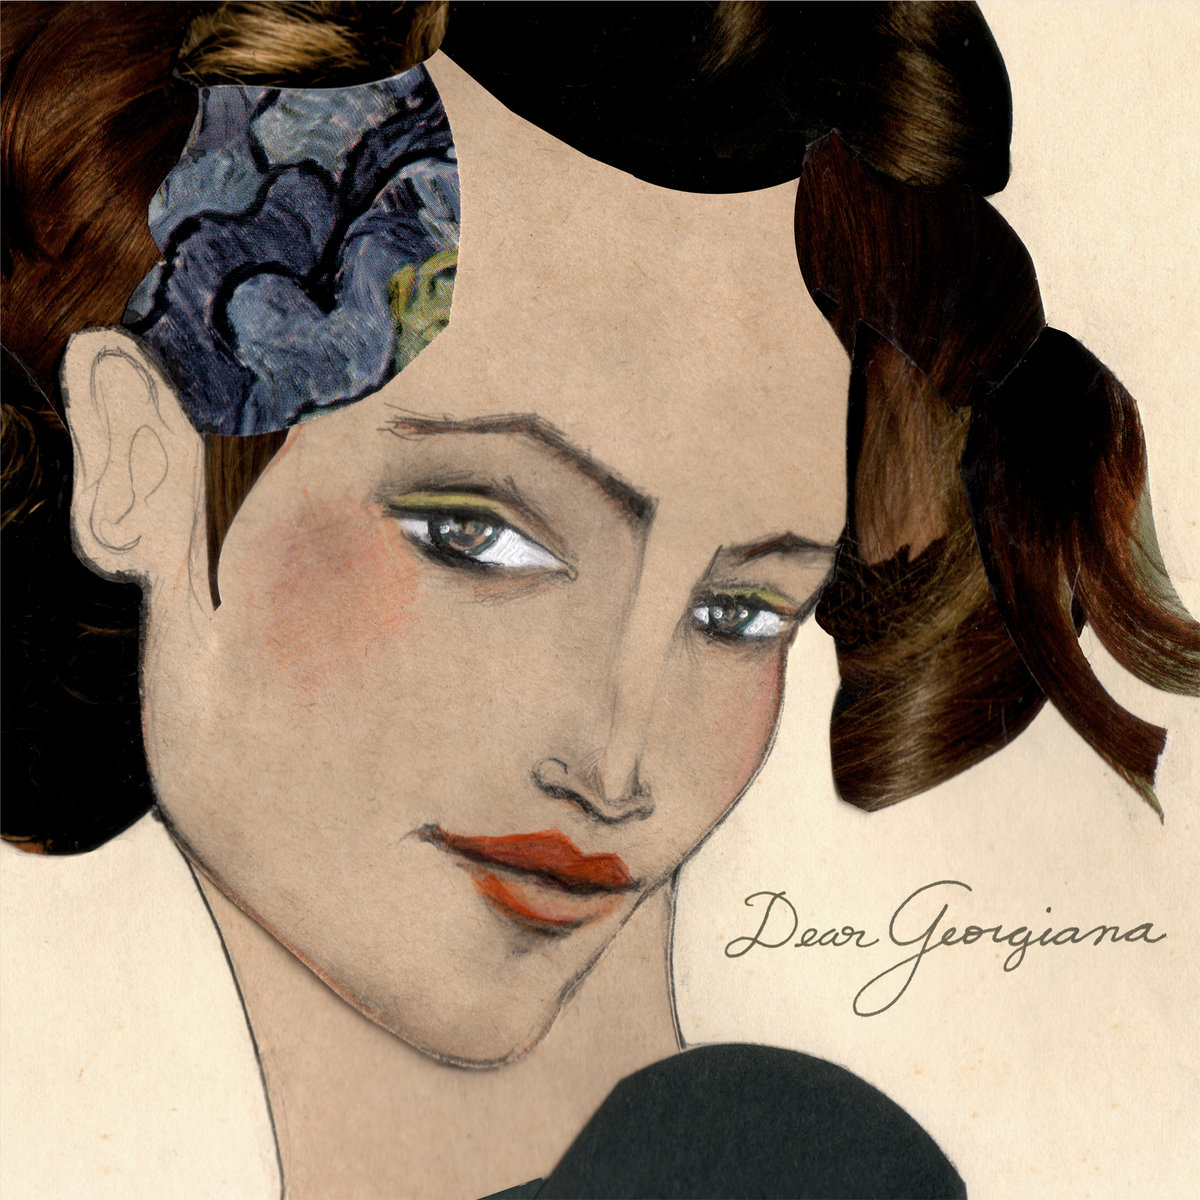 Dear Georgiana - Dear Georgiana artwork